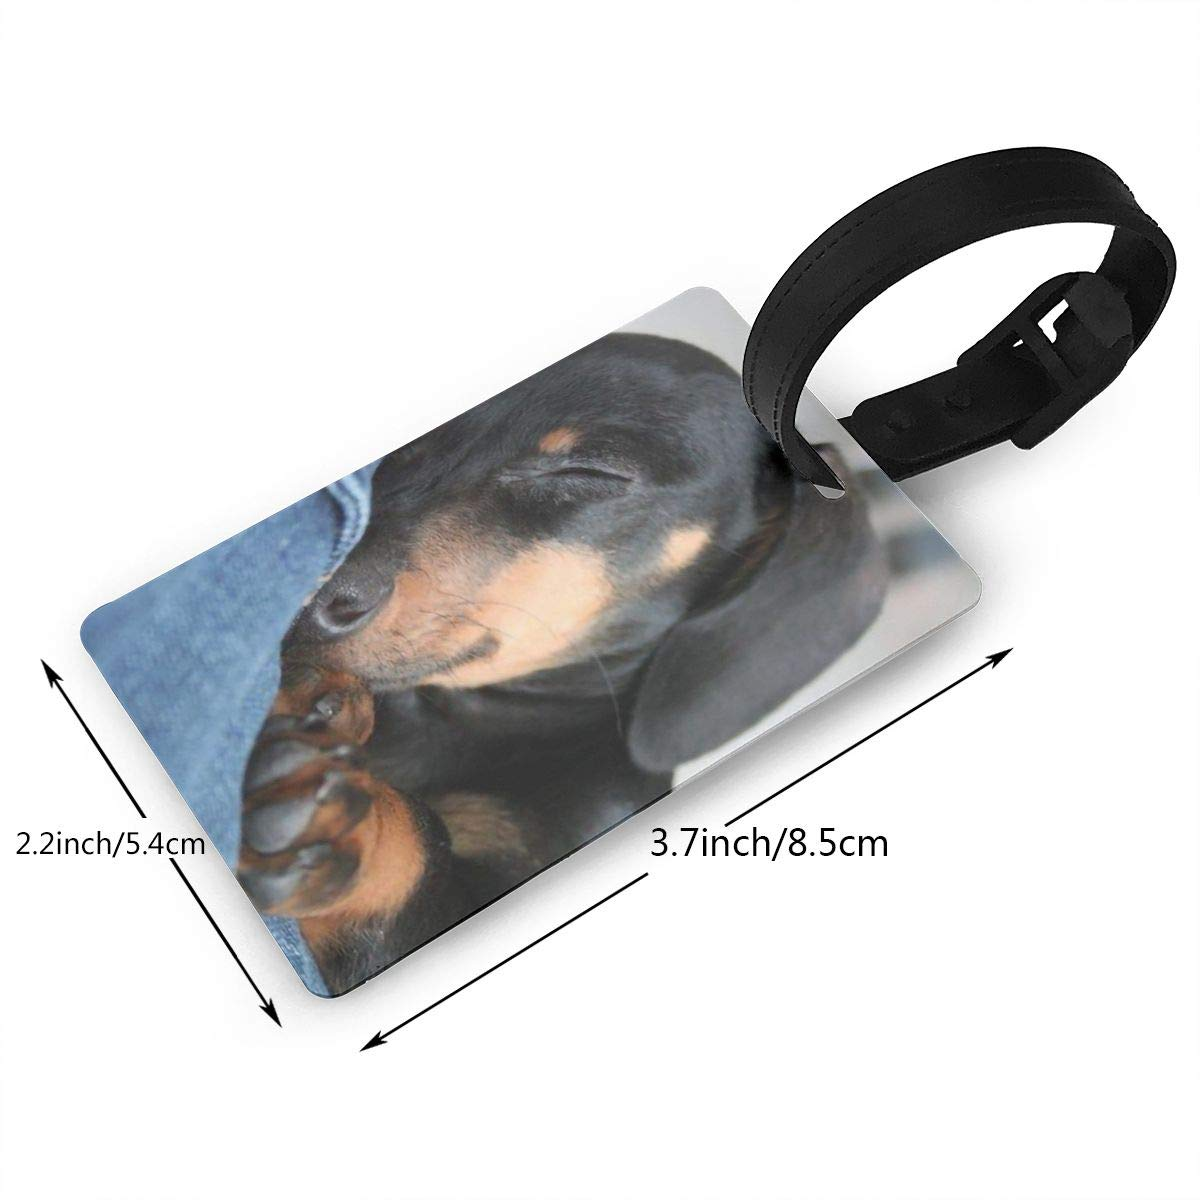 Dachshund Wiener Dog Cruise Luggage Tag For Travel Tags Accessories 2 Pack Luggage Tags